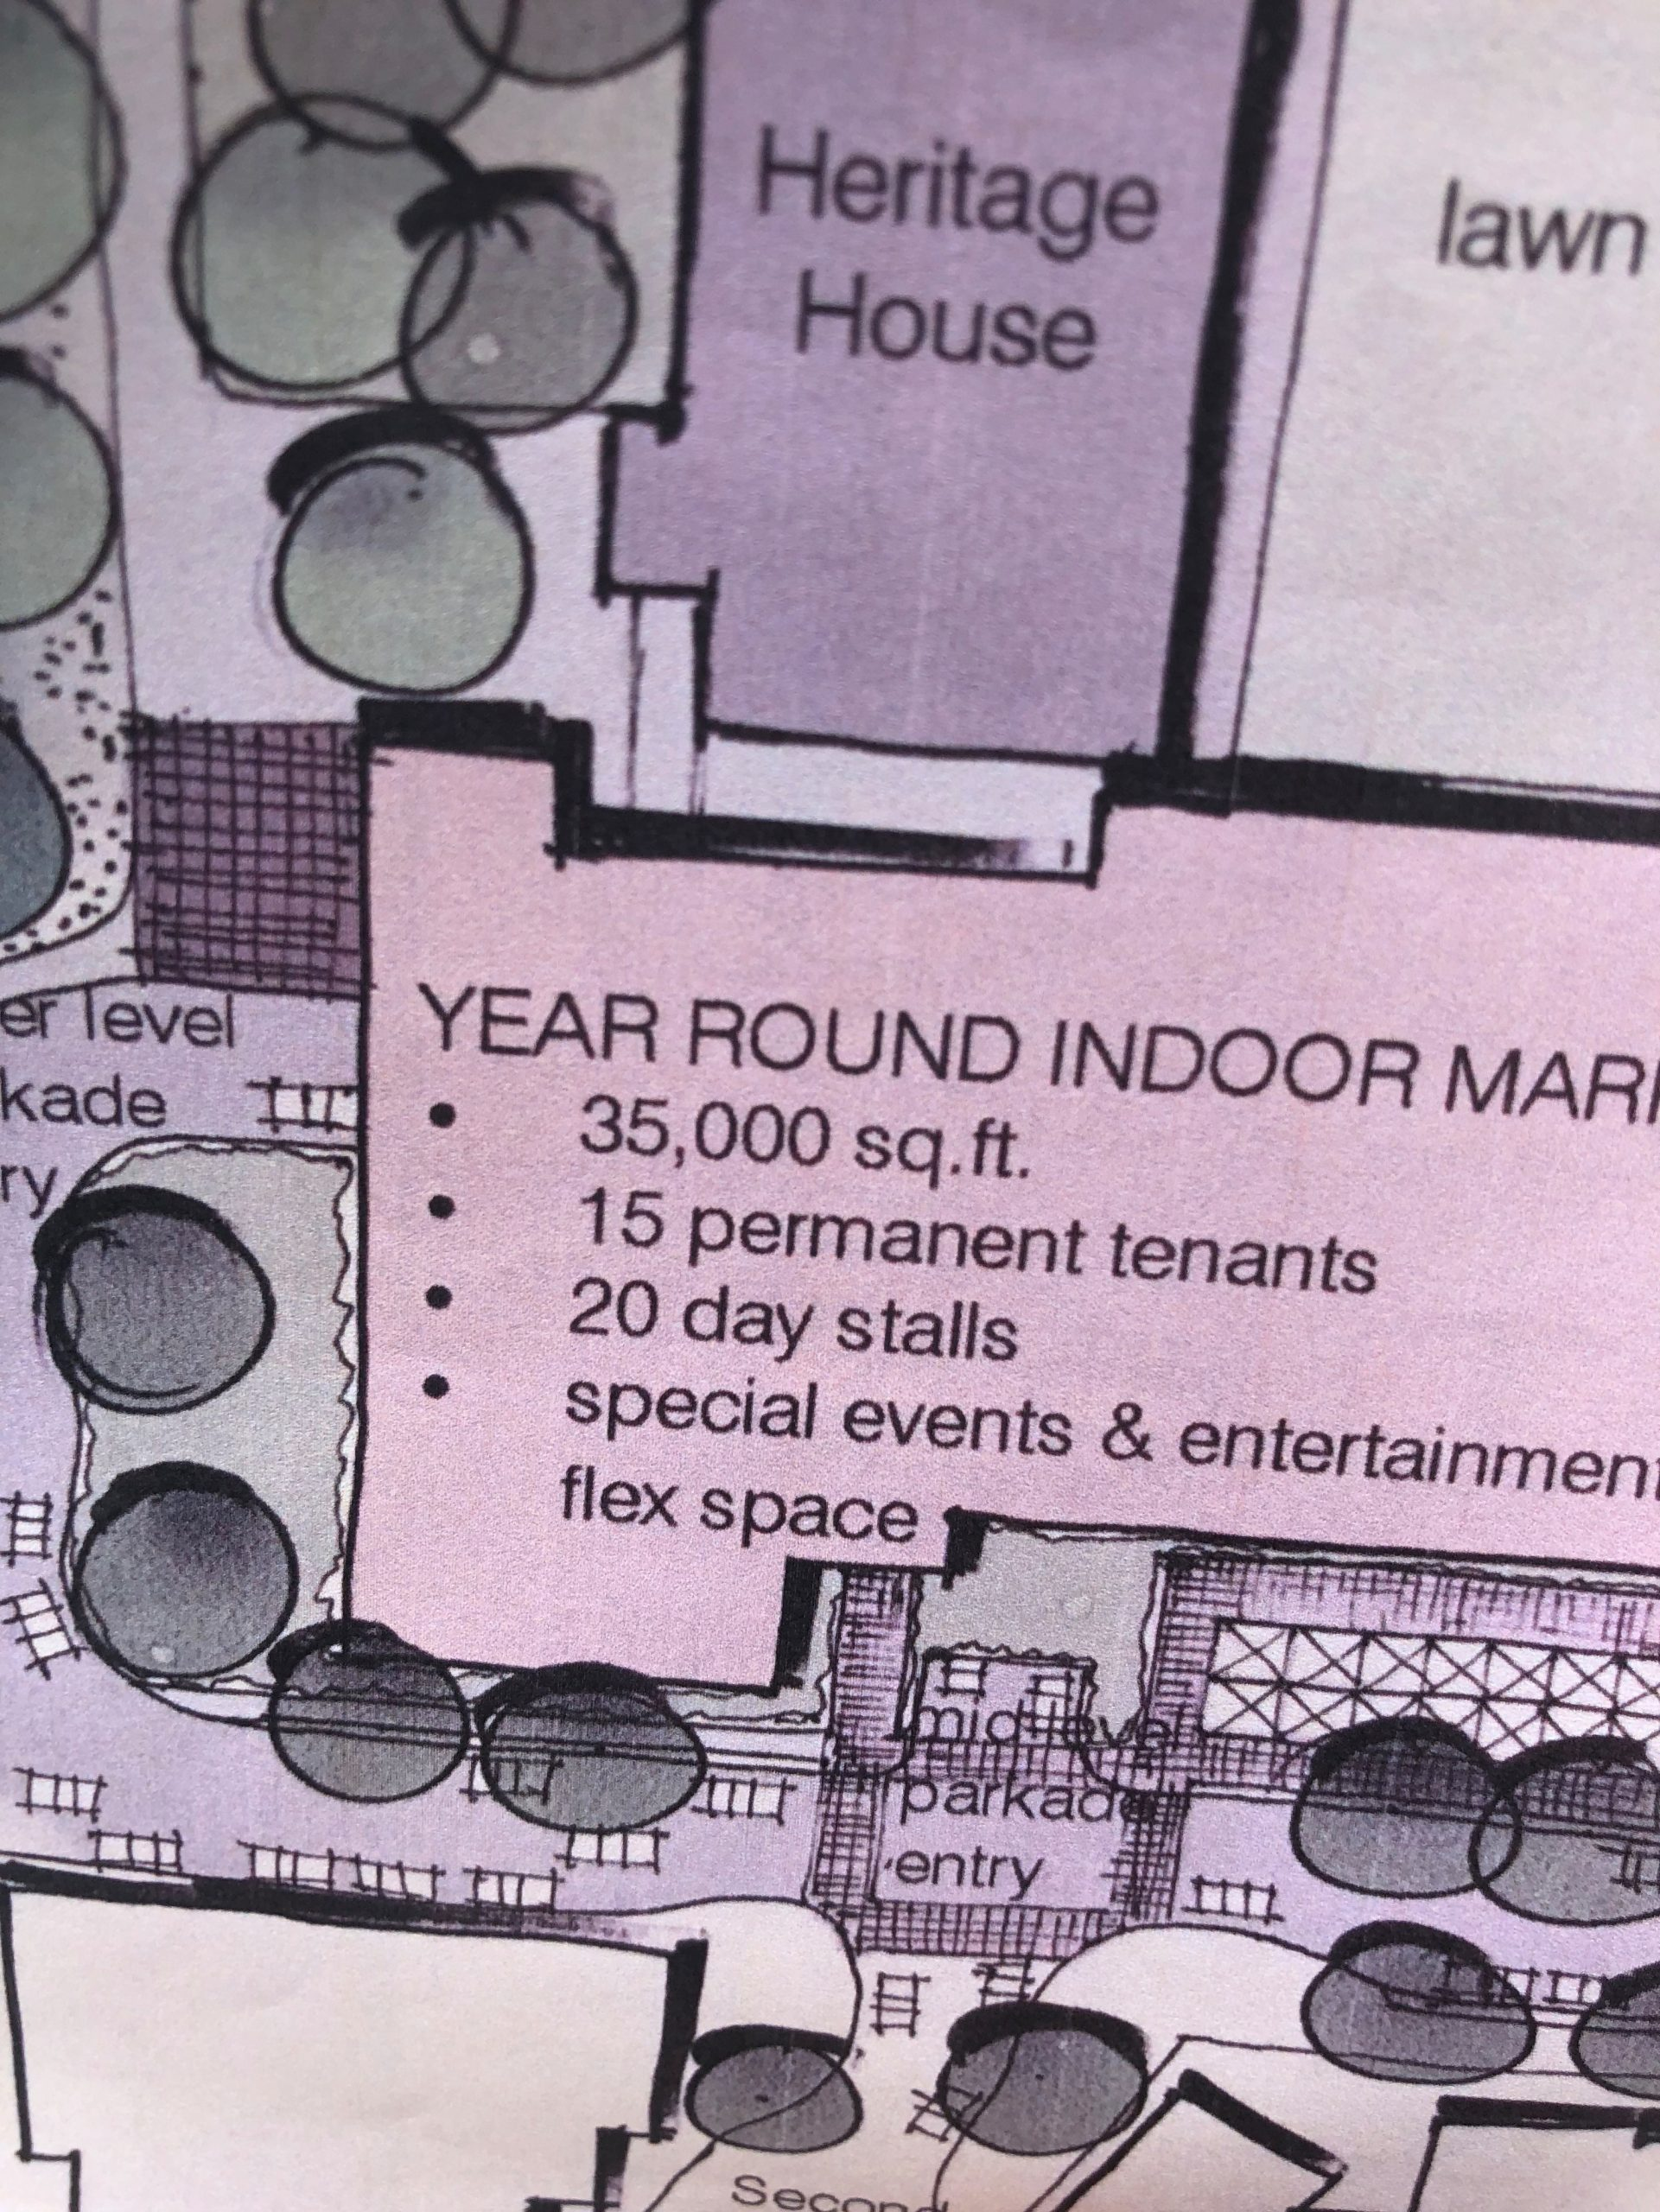 Preliminary plans in the works for proposed indoor public market